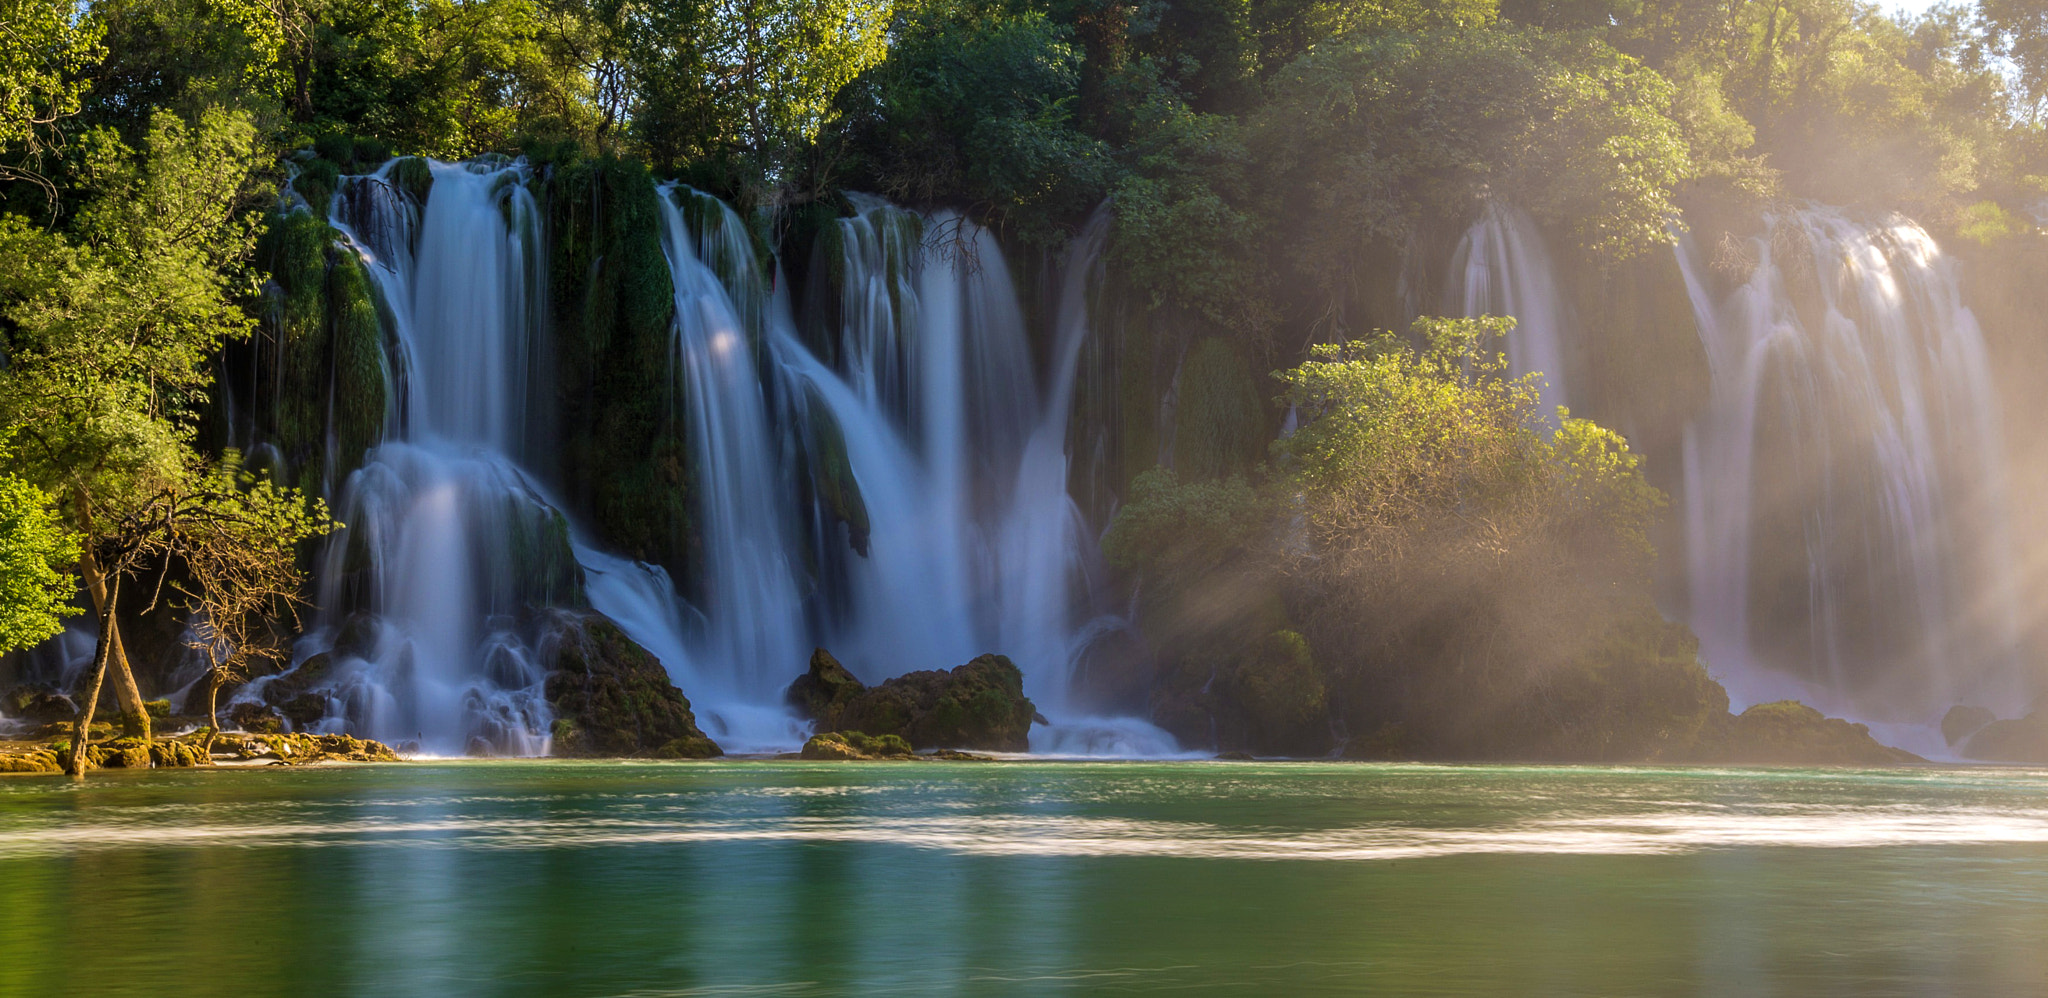 Photograph Kravice Waterfalls (05) by Vlado Ferencic on 500px